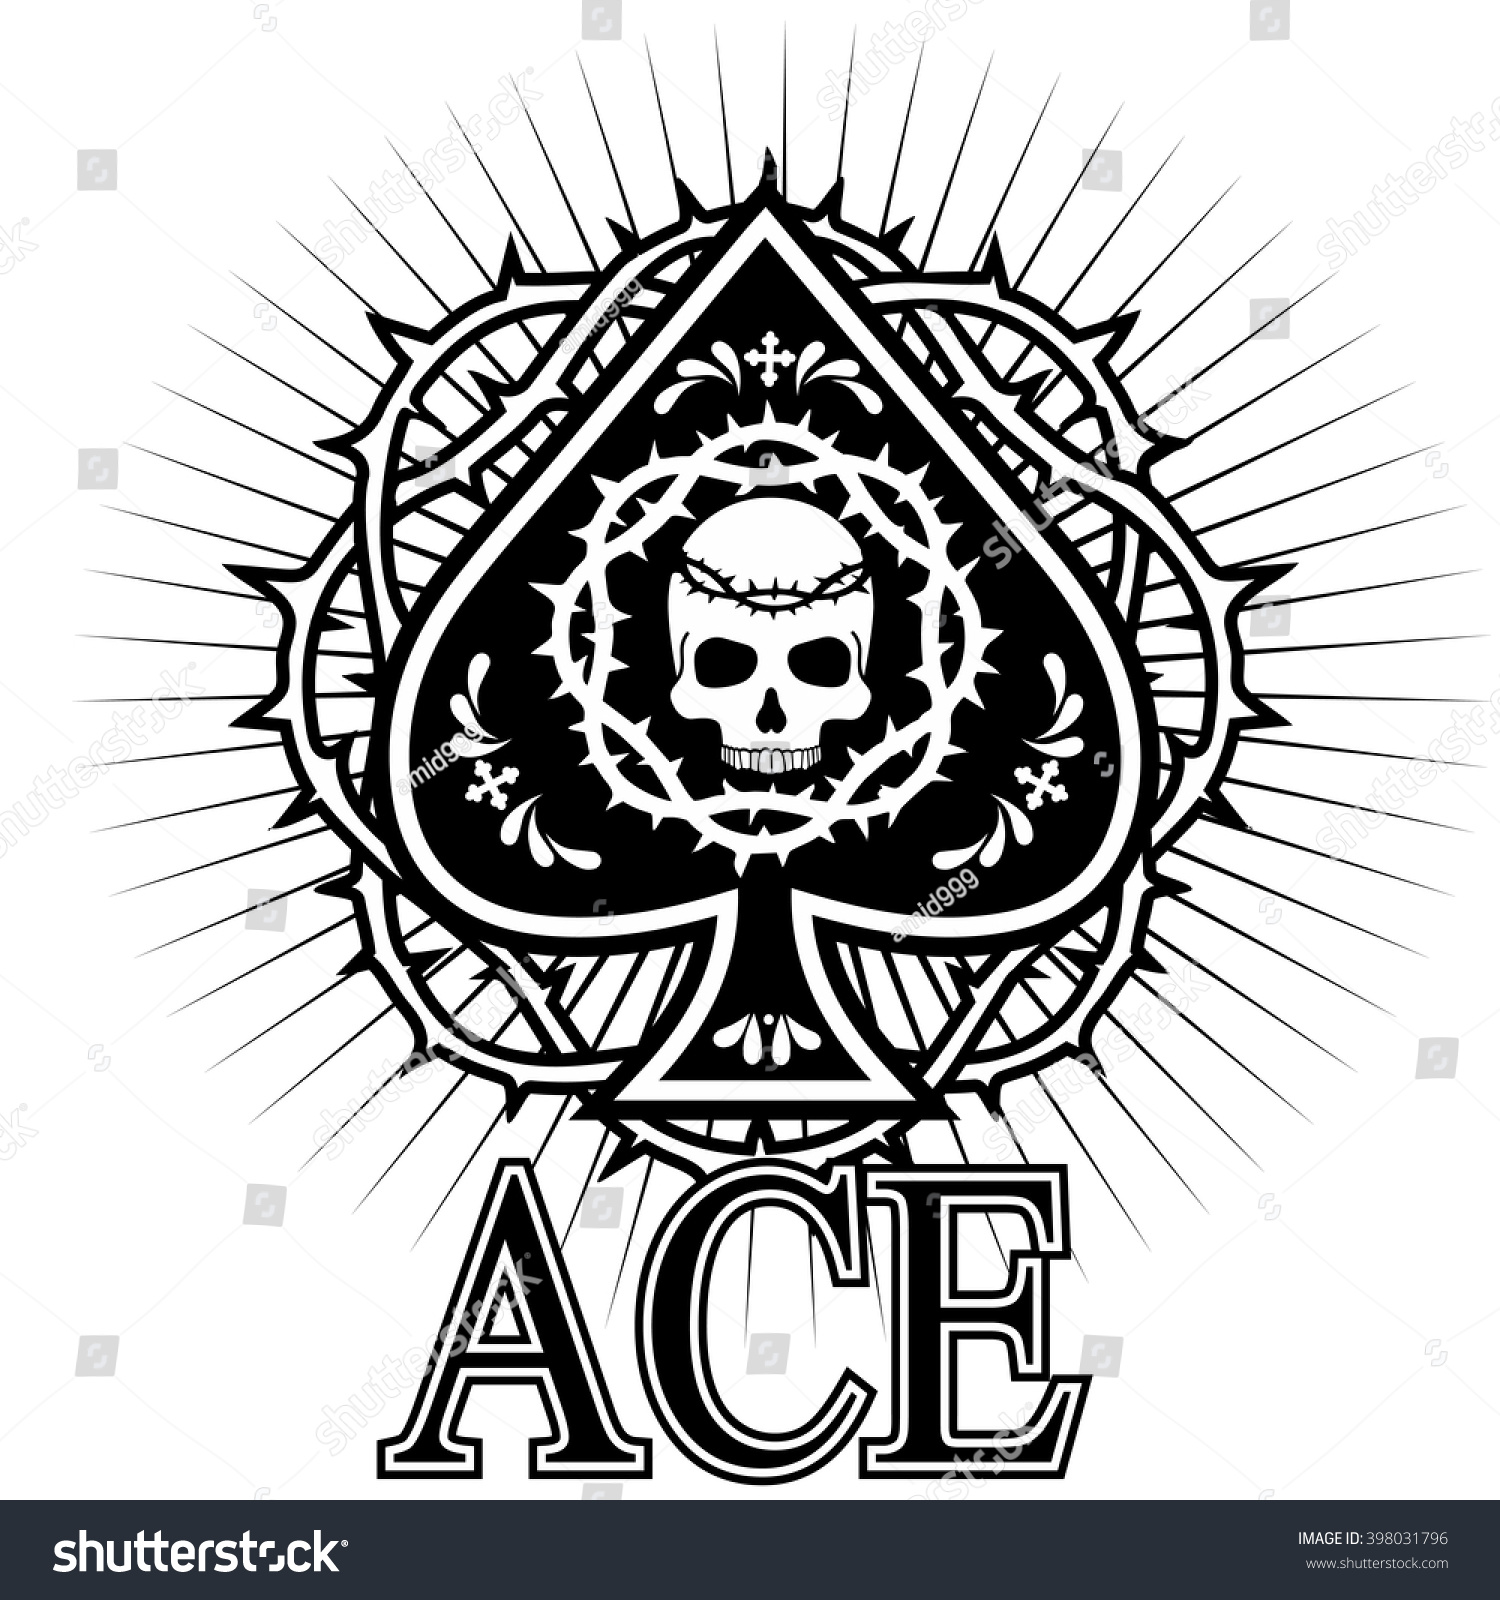 Ace spades skull stock vector 398031796 shutterstock ace of spades with skull biocorpaavc Choice Image